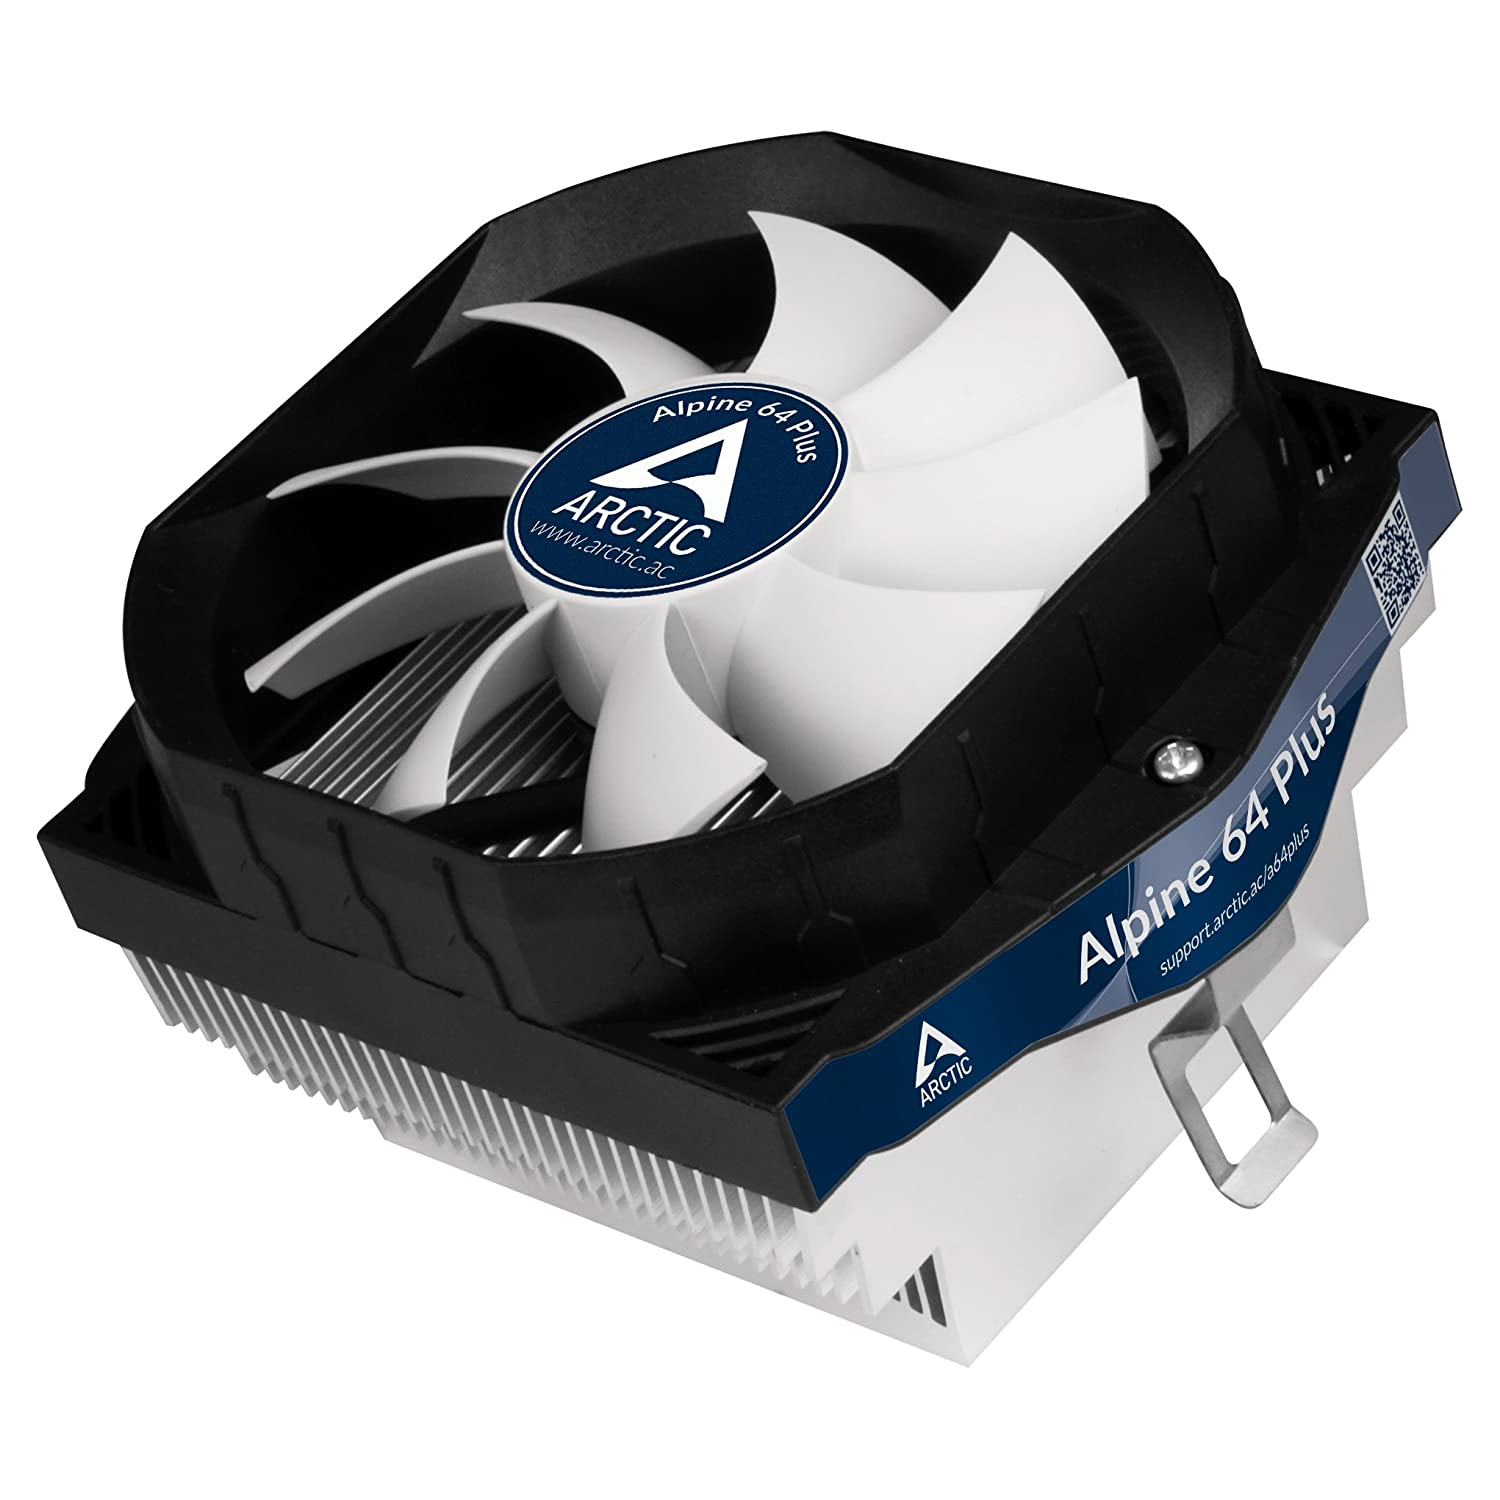 ARCTIC Alpine 64 Plus - Ultra Quiet CPU Cooler fo AMD, Supports Multiple Sockets, 92mm PWM Fan at 23dBA